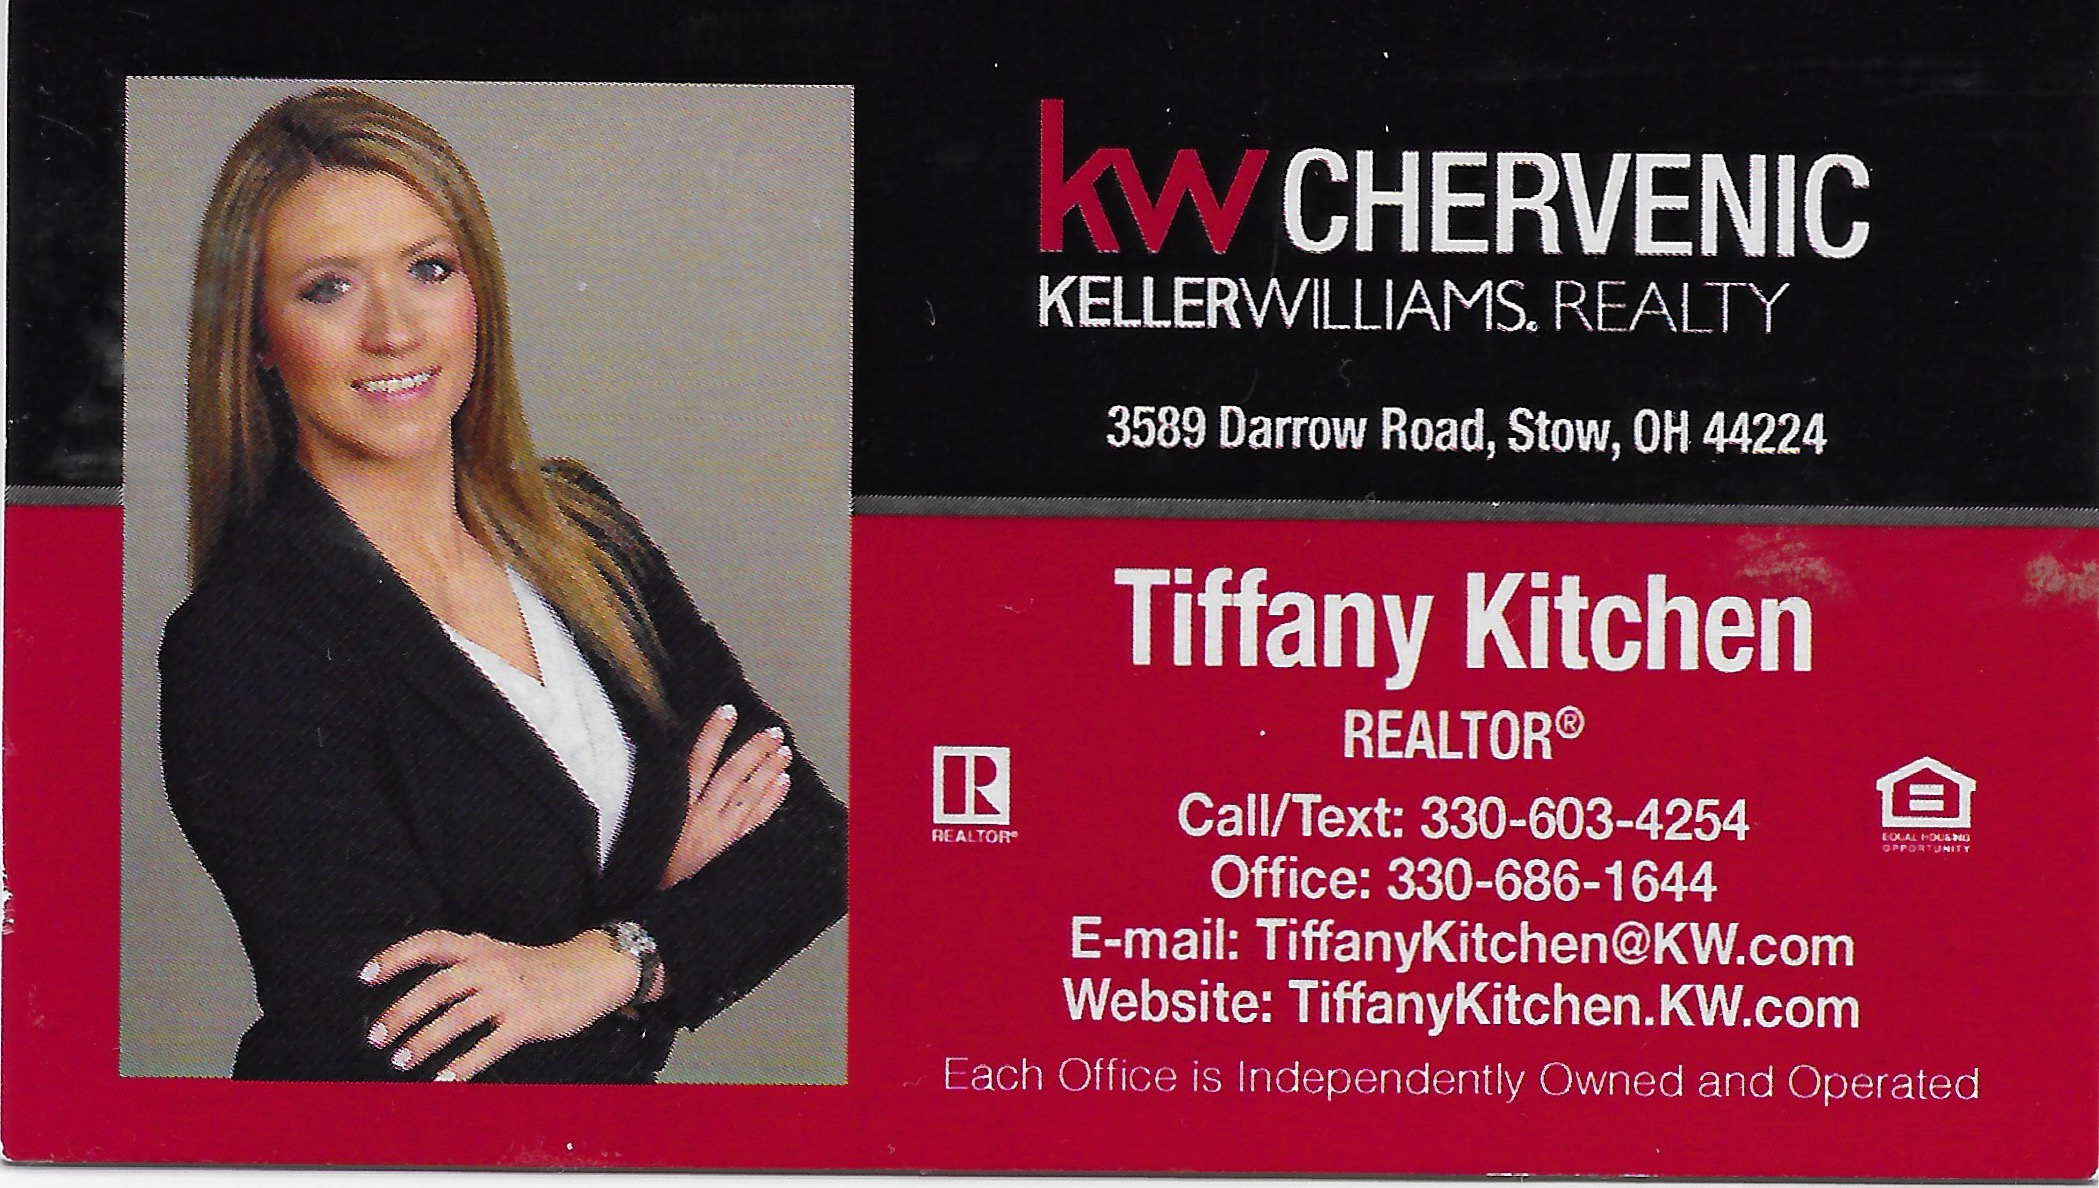 TIFFANY KITCHEN REALTOR